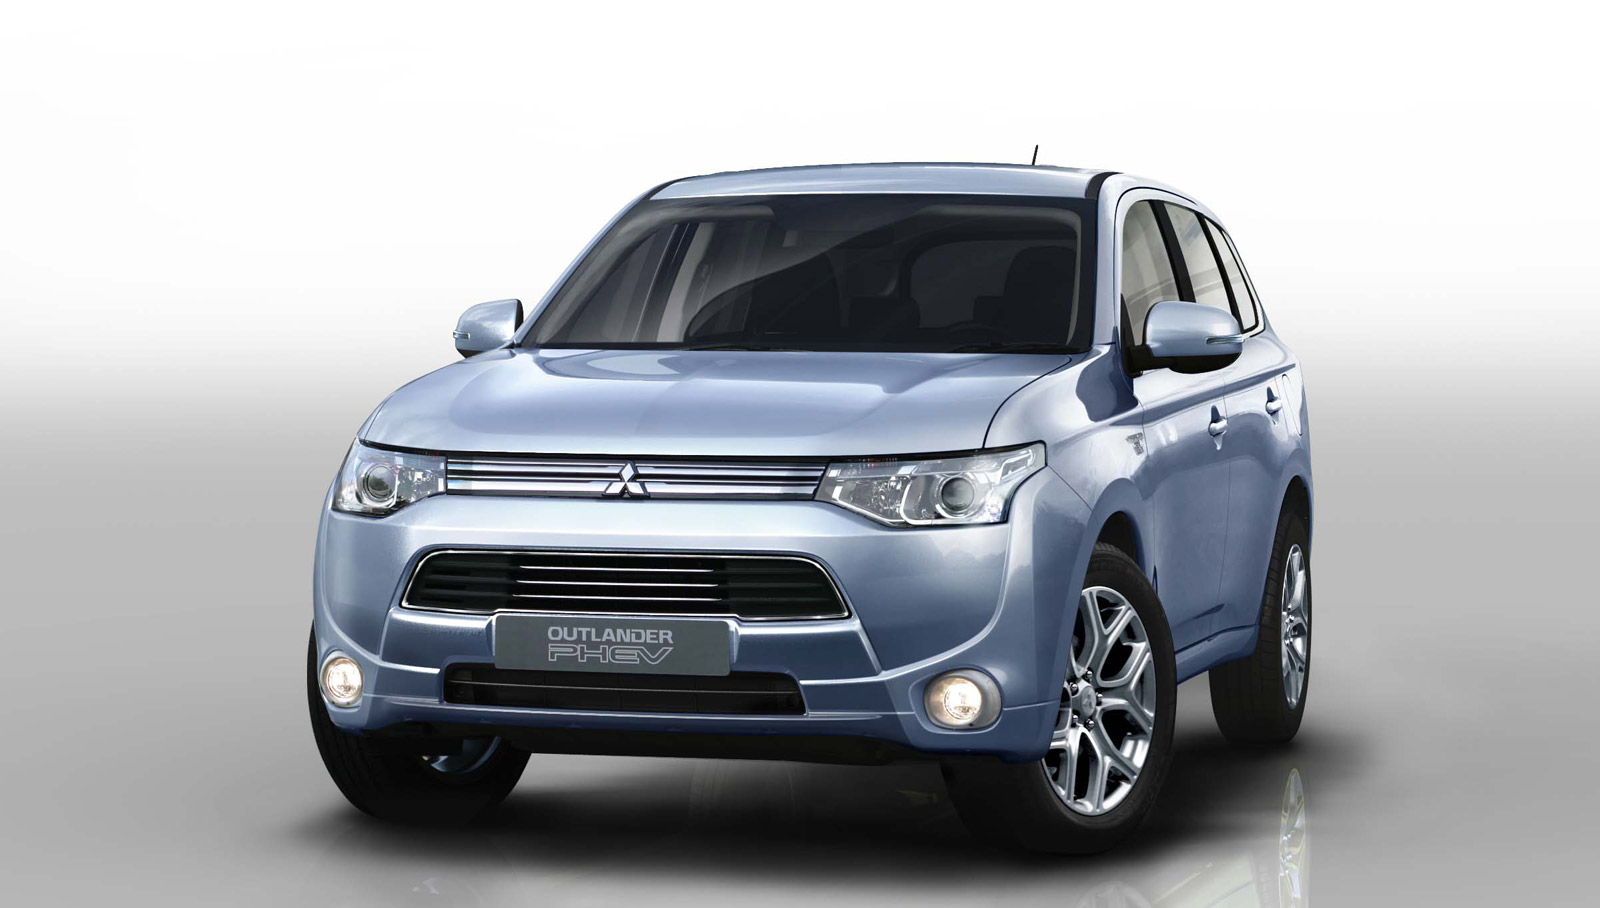 2014 mitsubishi outlander phev preview 2012 paris auto show. Black Bedroom Furniture Sets. Home Design Ideas